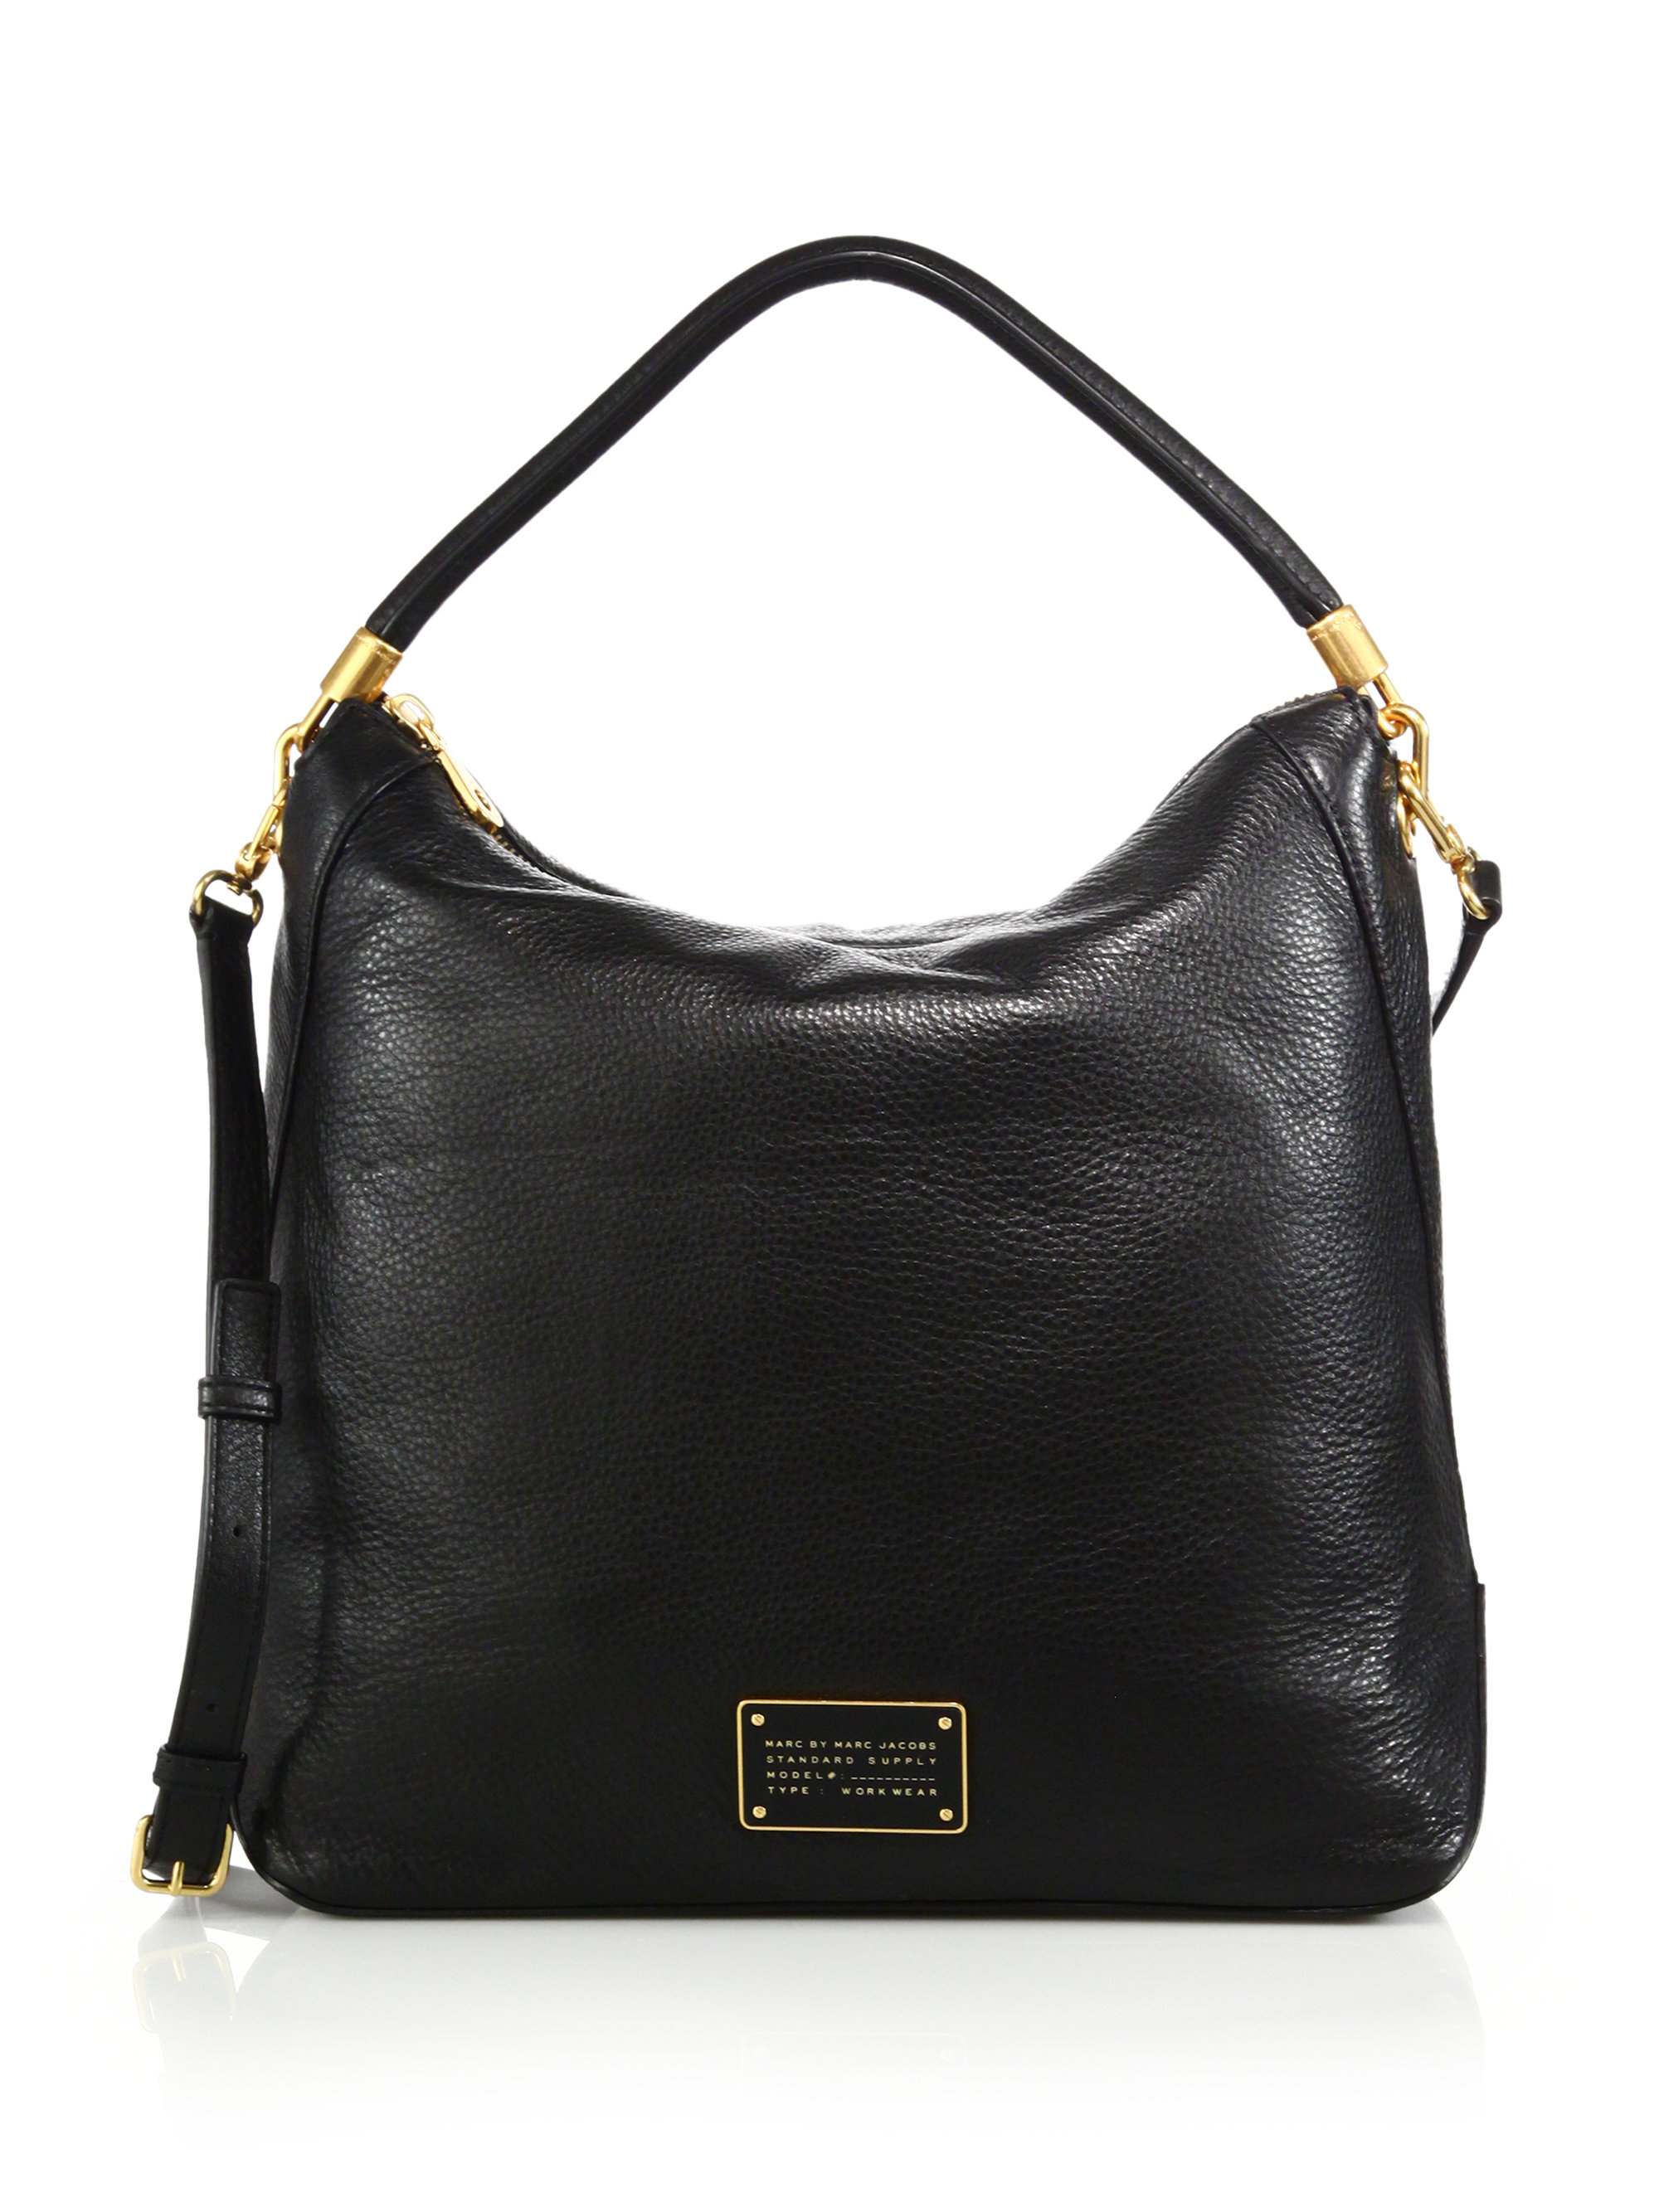 marc by marc jacobs too hot to handle leather hobo bag in black lyst. Black Bedroom Furniture Sets. Home Design Ideas